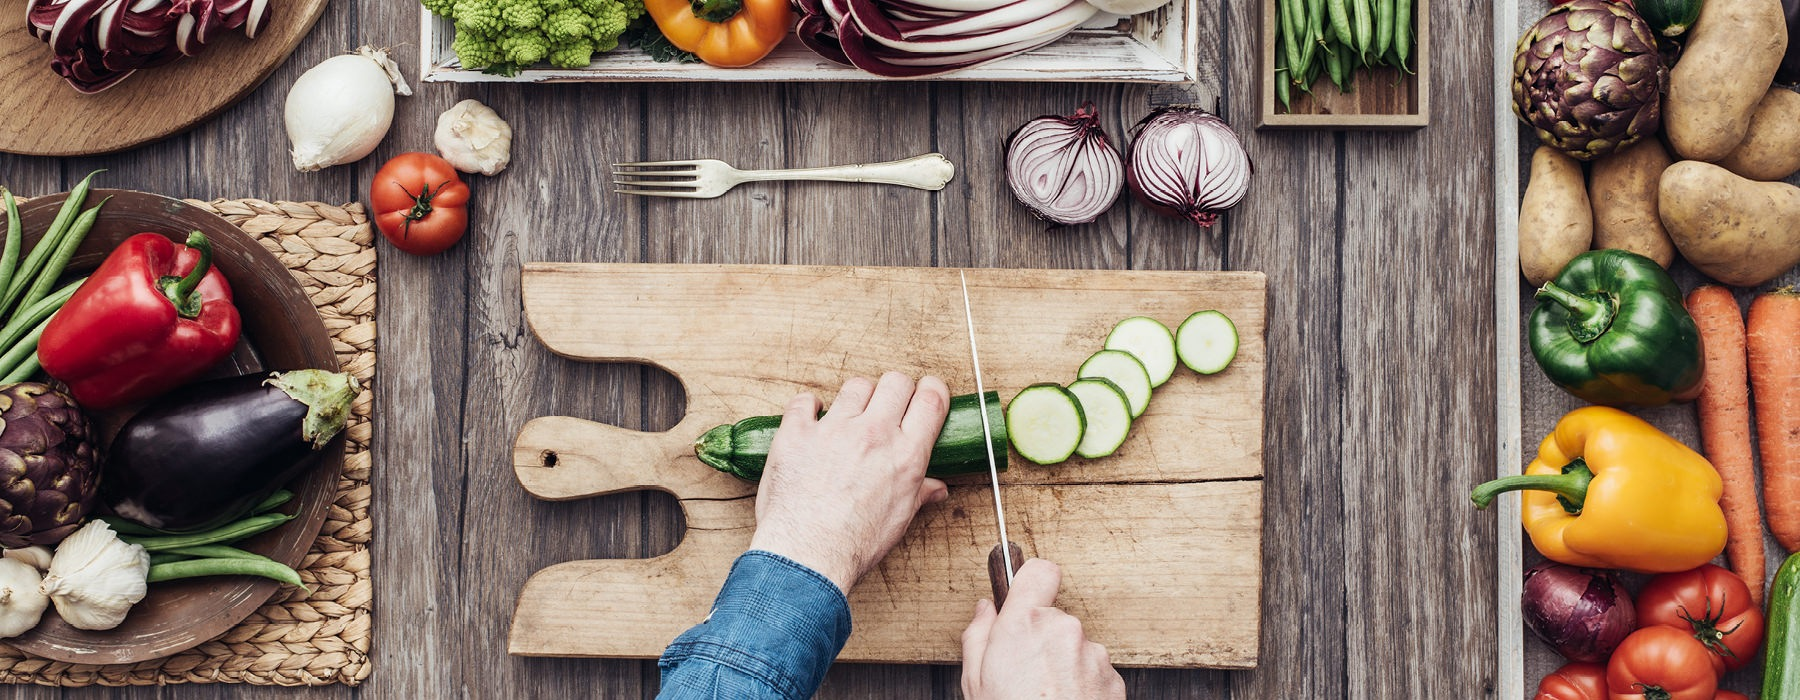 man slicing zucchini on wooden cutting board surrounded by fresh vegetables on large wood table